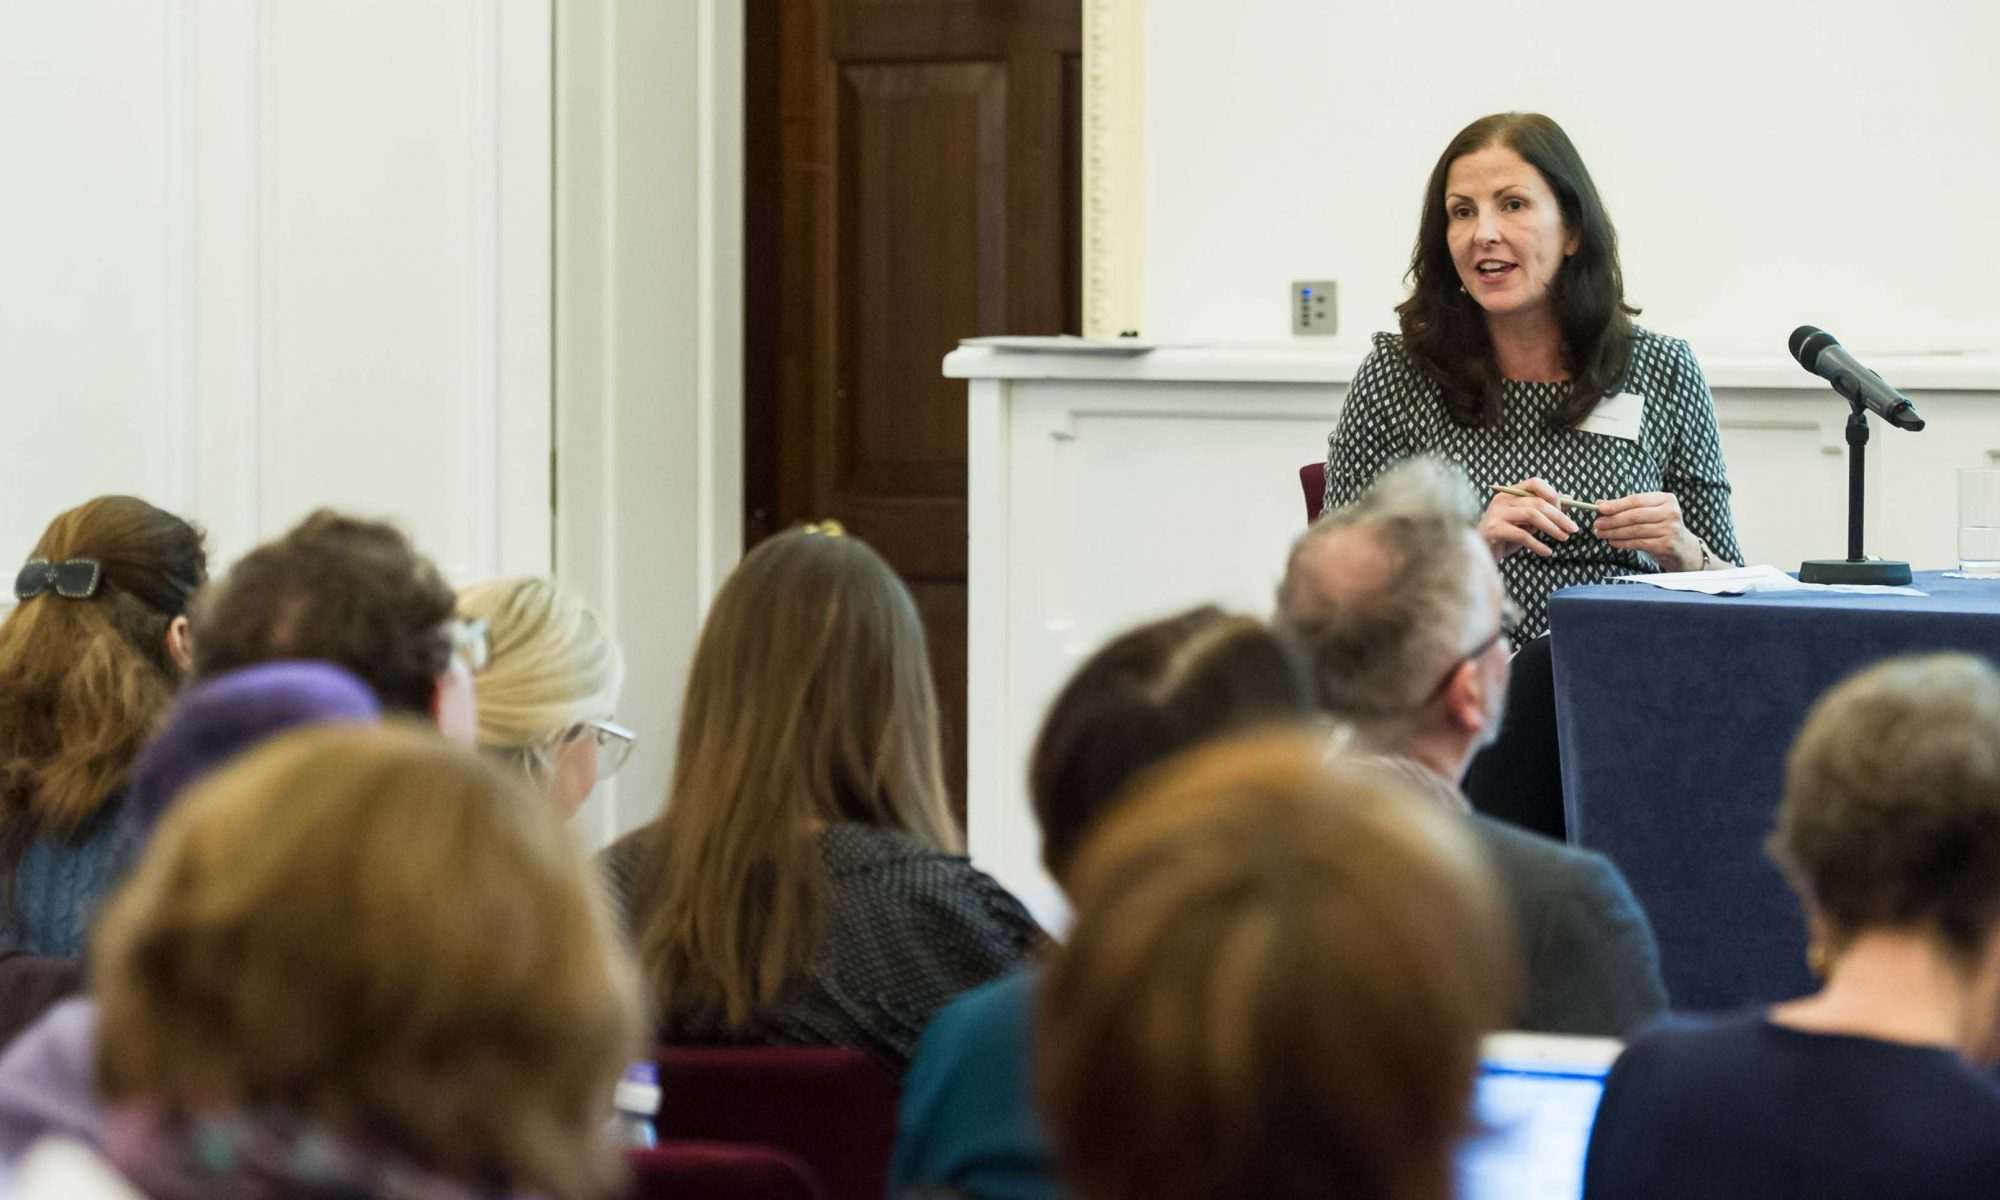 Prof Debbie Foster speaks to an audience at a conference